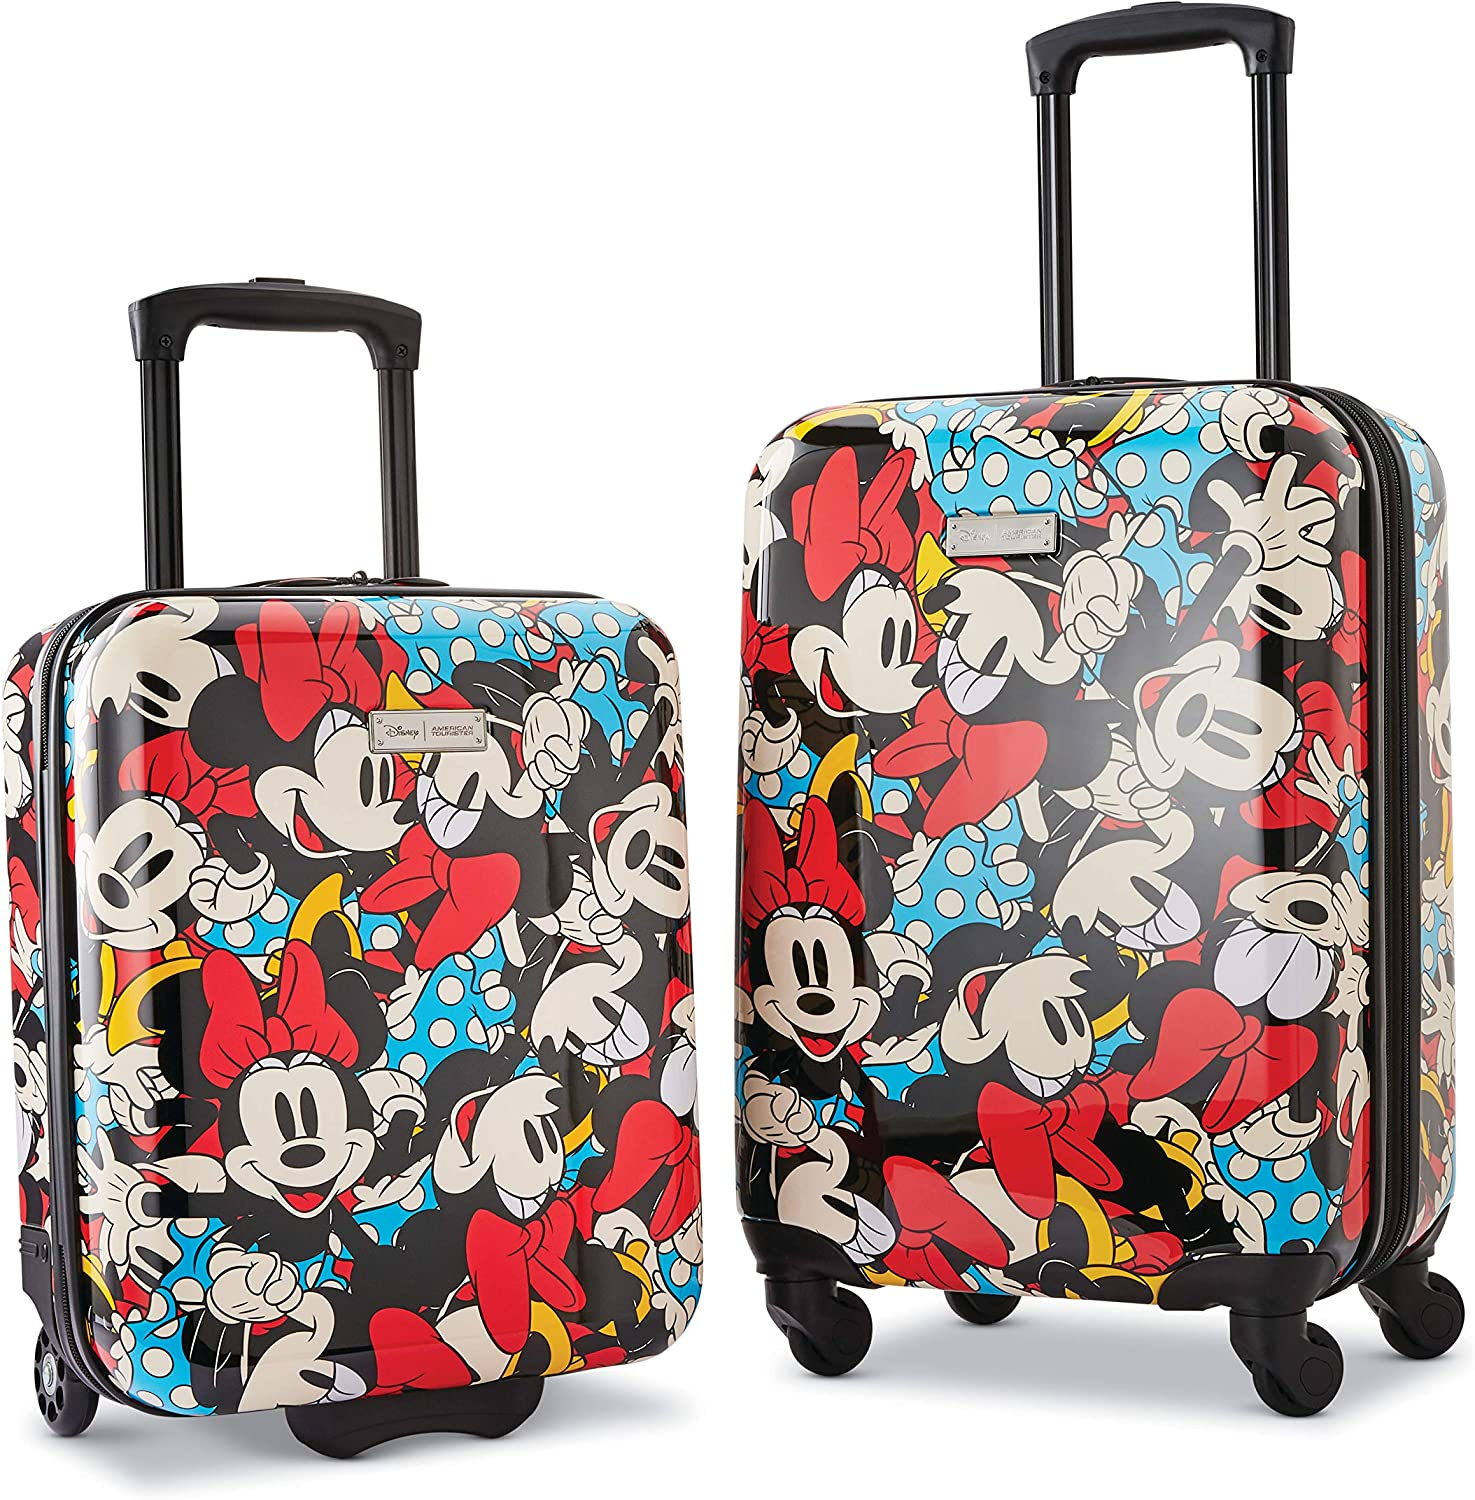 Amazon Com American Tourister Disney Hardside Luggage With Spinner Wheels Minnie Mouse 2 2 Piece Set 18 21 Kids Luggage